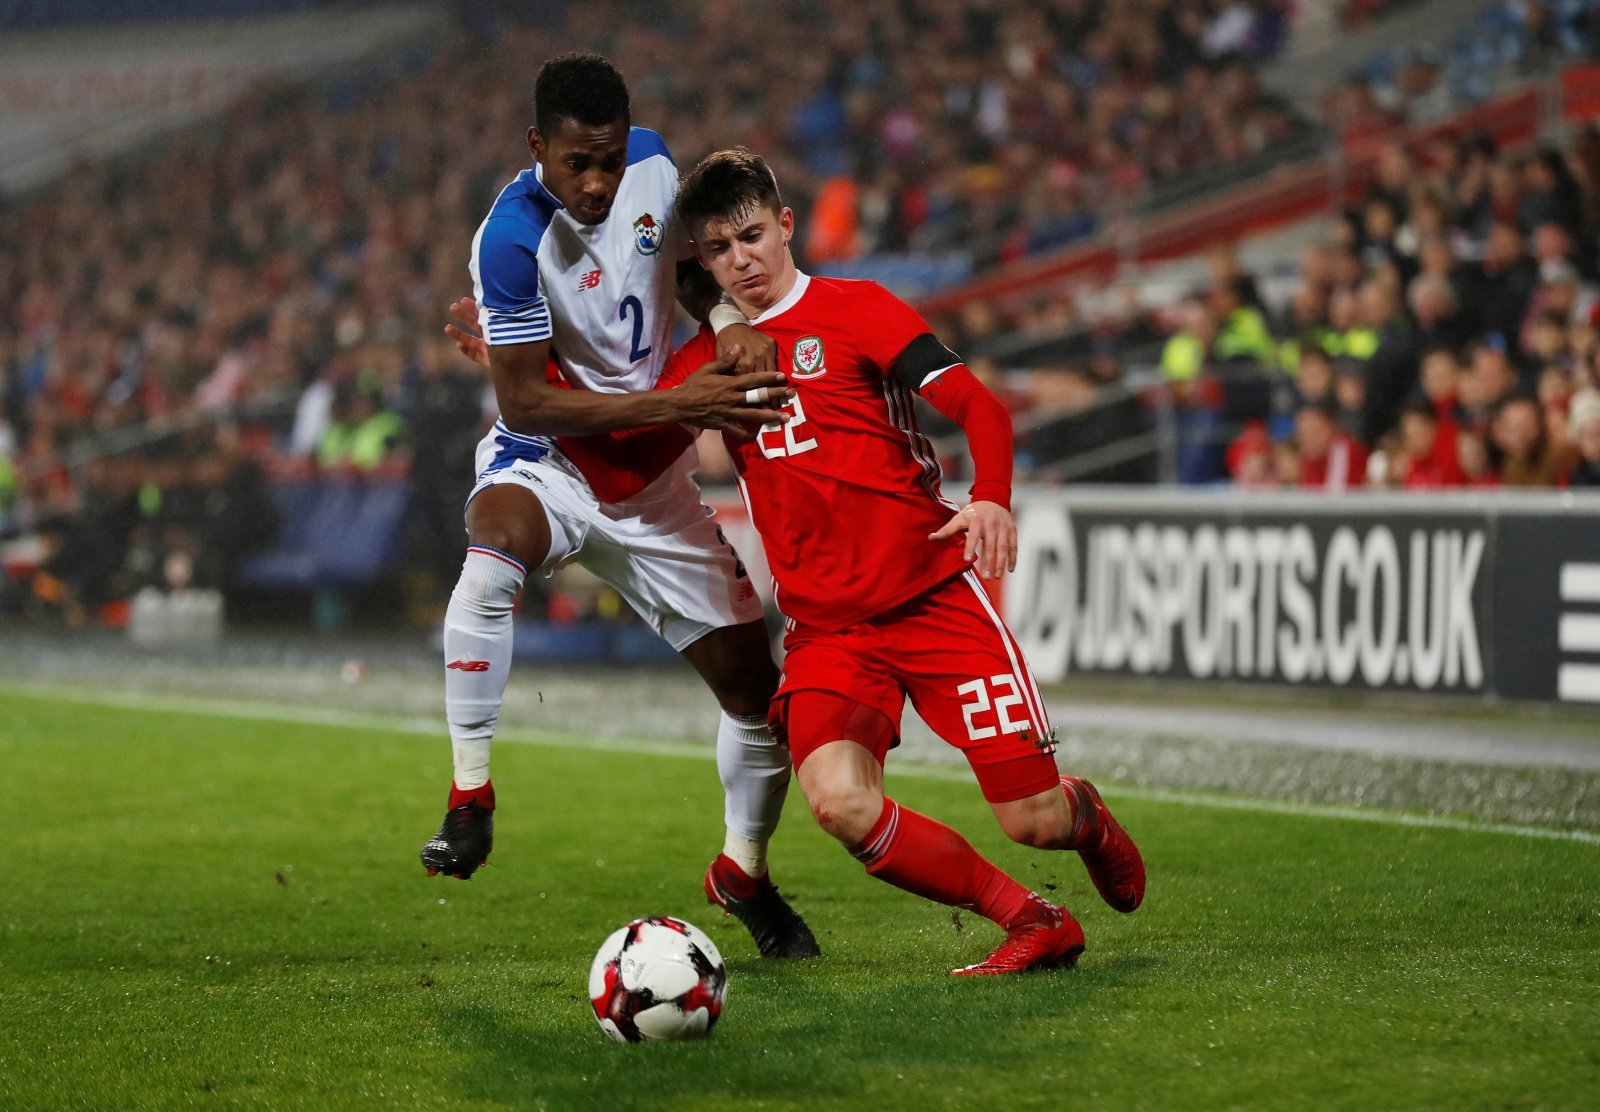 Leeds could live to regret not signing Ben Woodburn